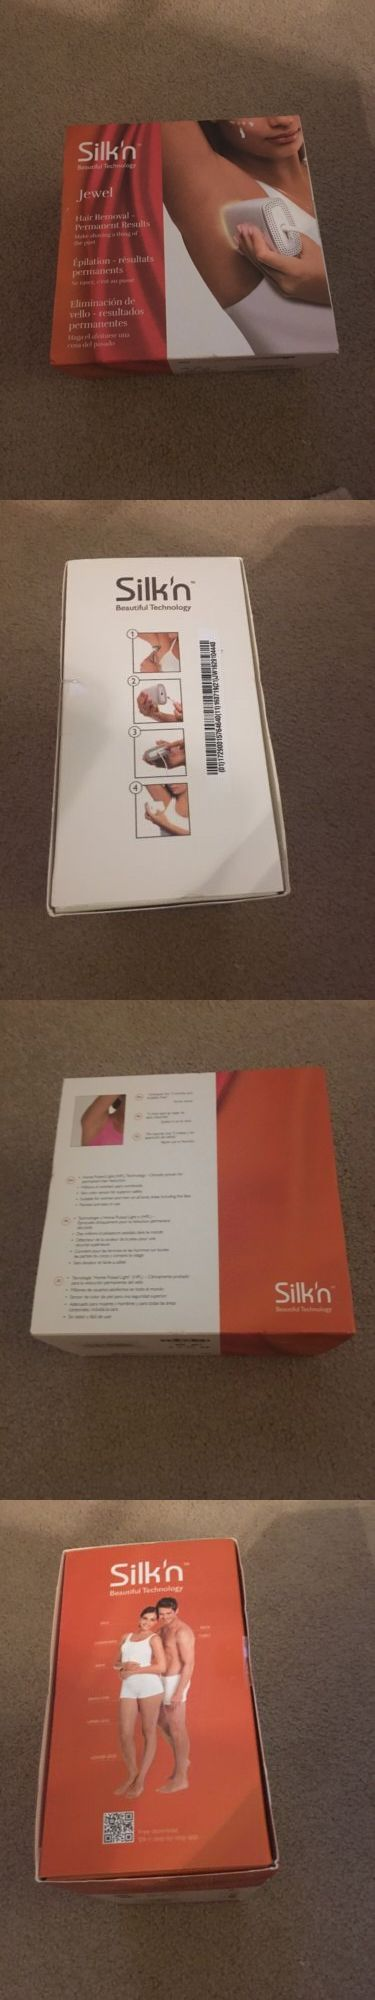 Laser Hair Removal and IPL: Silkn Jewel Hair Removal Device! Home Pulsed Light (Hpl) Technology!New In Box! BUY IT NOW ONLY: $90.0